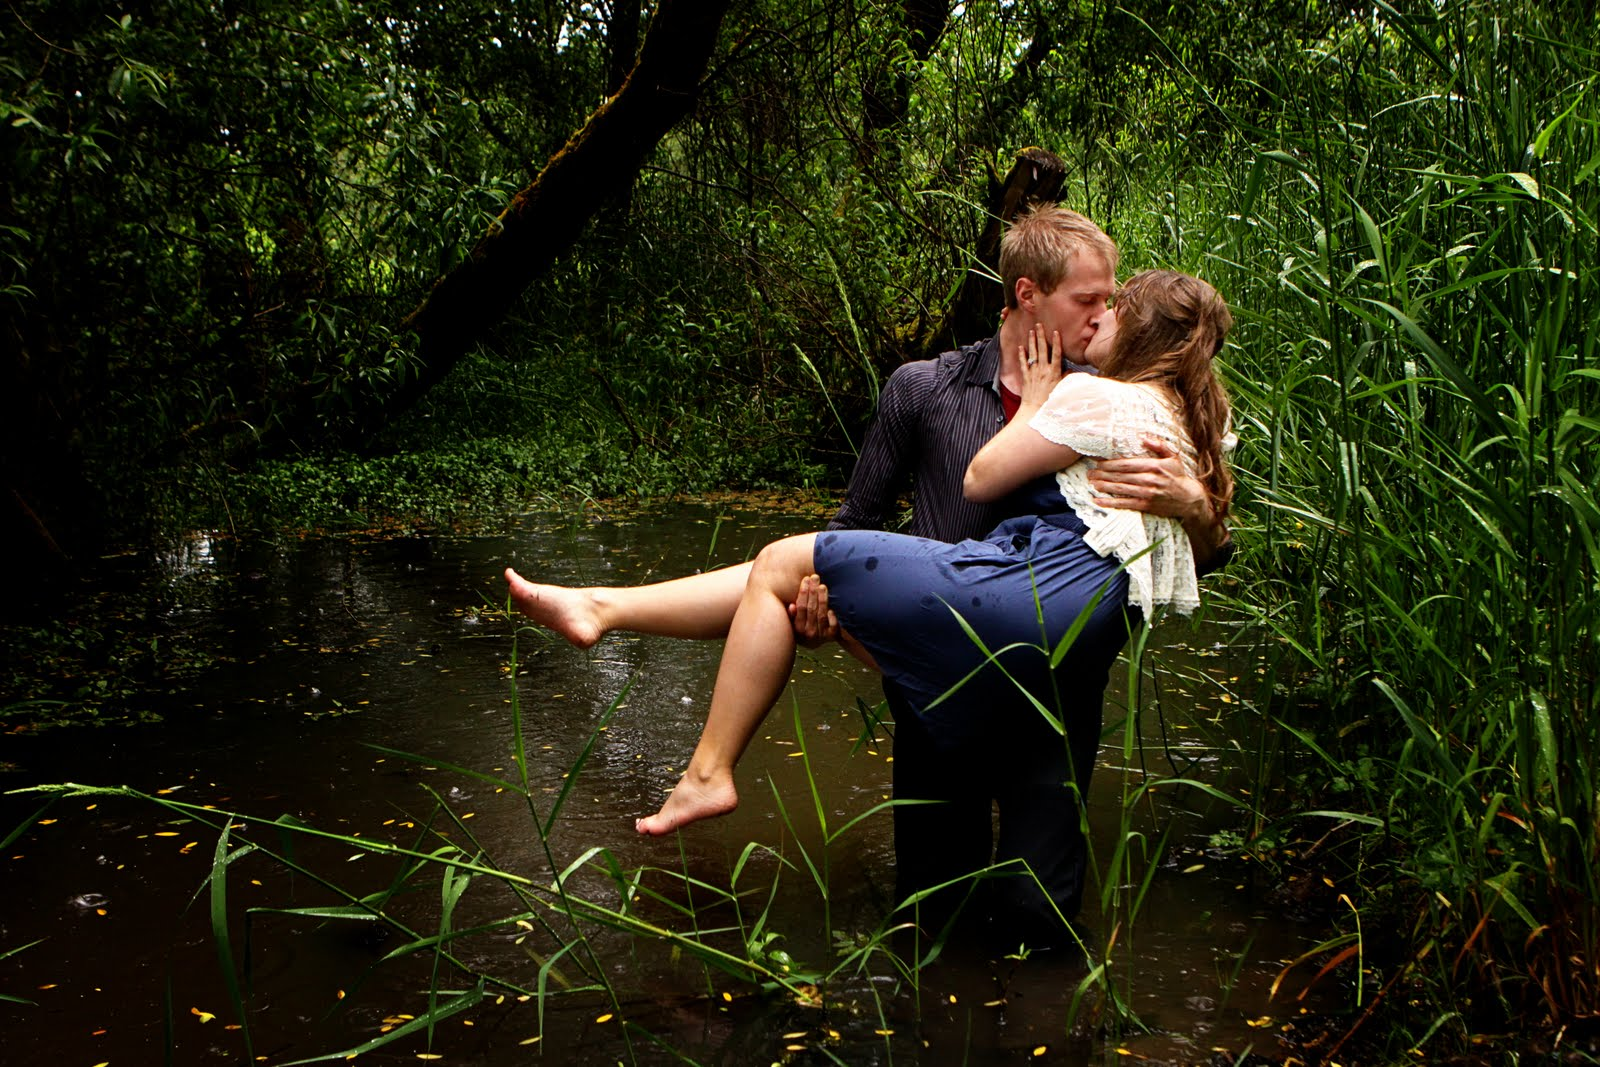 grass range mature women personals Meet grass range singles online & chat in the forums dhu is a 100% free dating site to find personals & casual encounters in grass range.